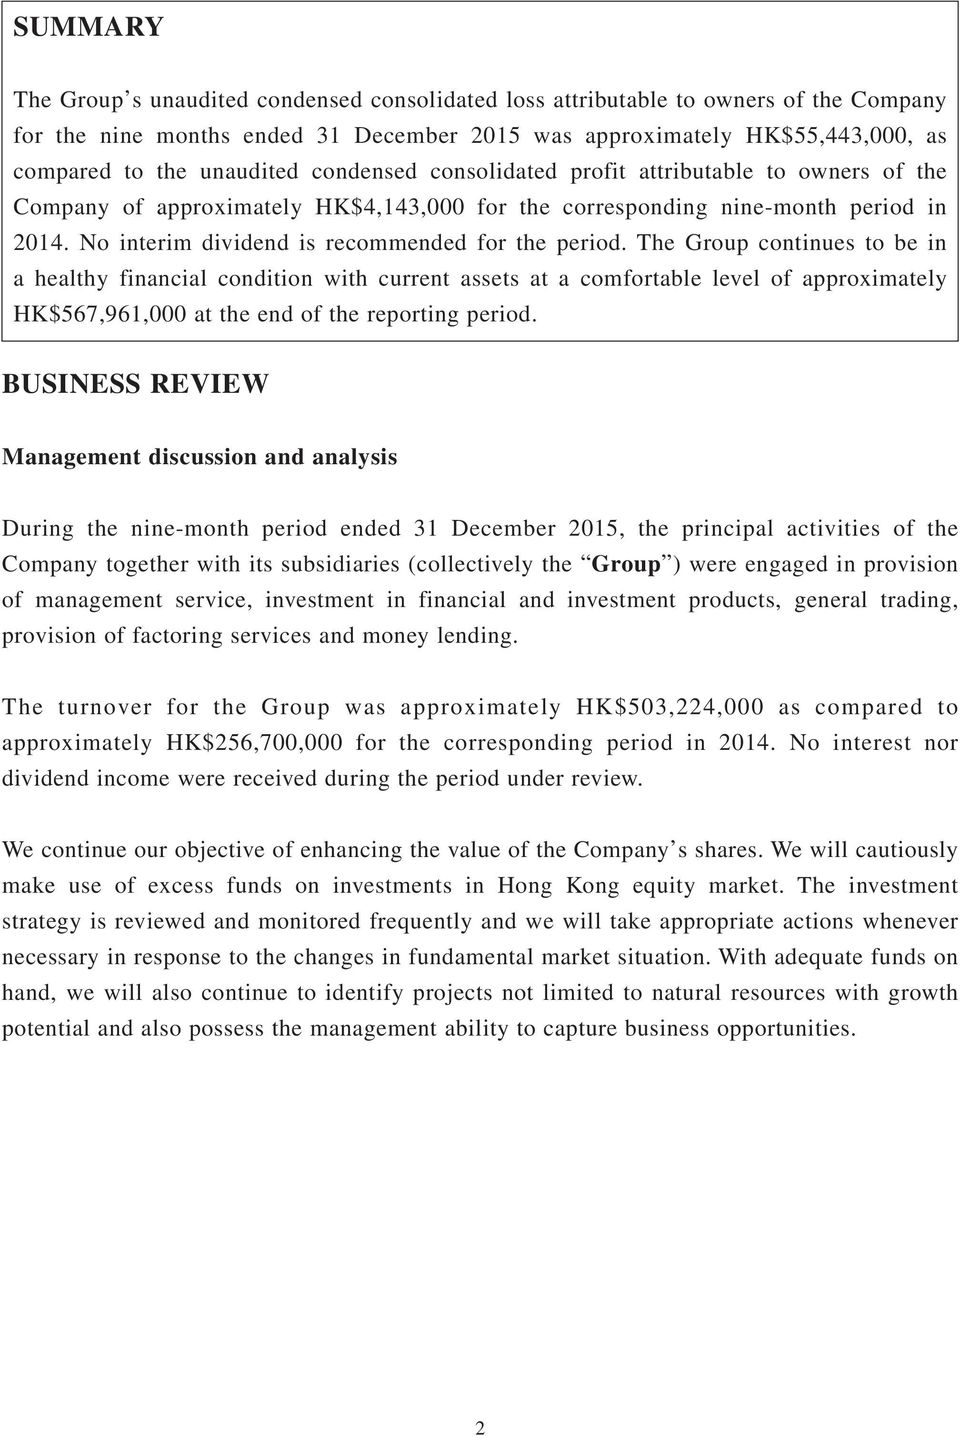 The Group continues to be in a healthy financial condition with current assets at a comfortable level of approximately HK$567,961,000 at the end of the reporting period.